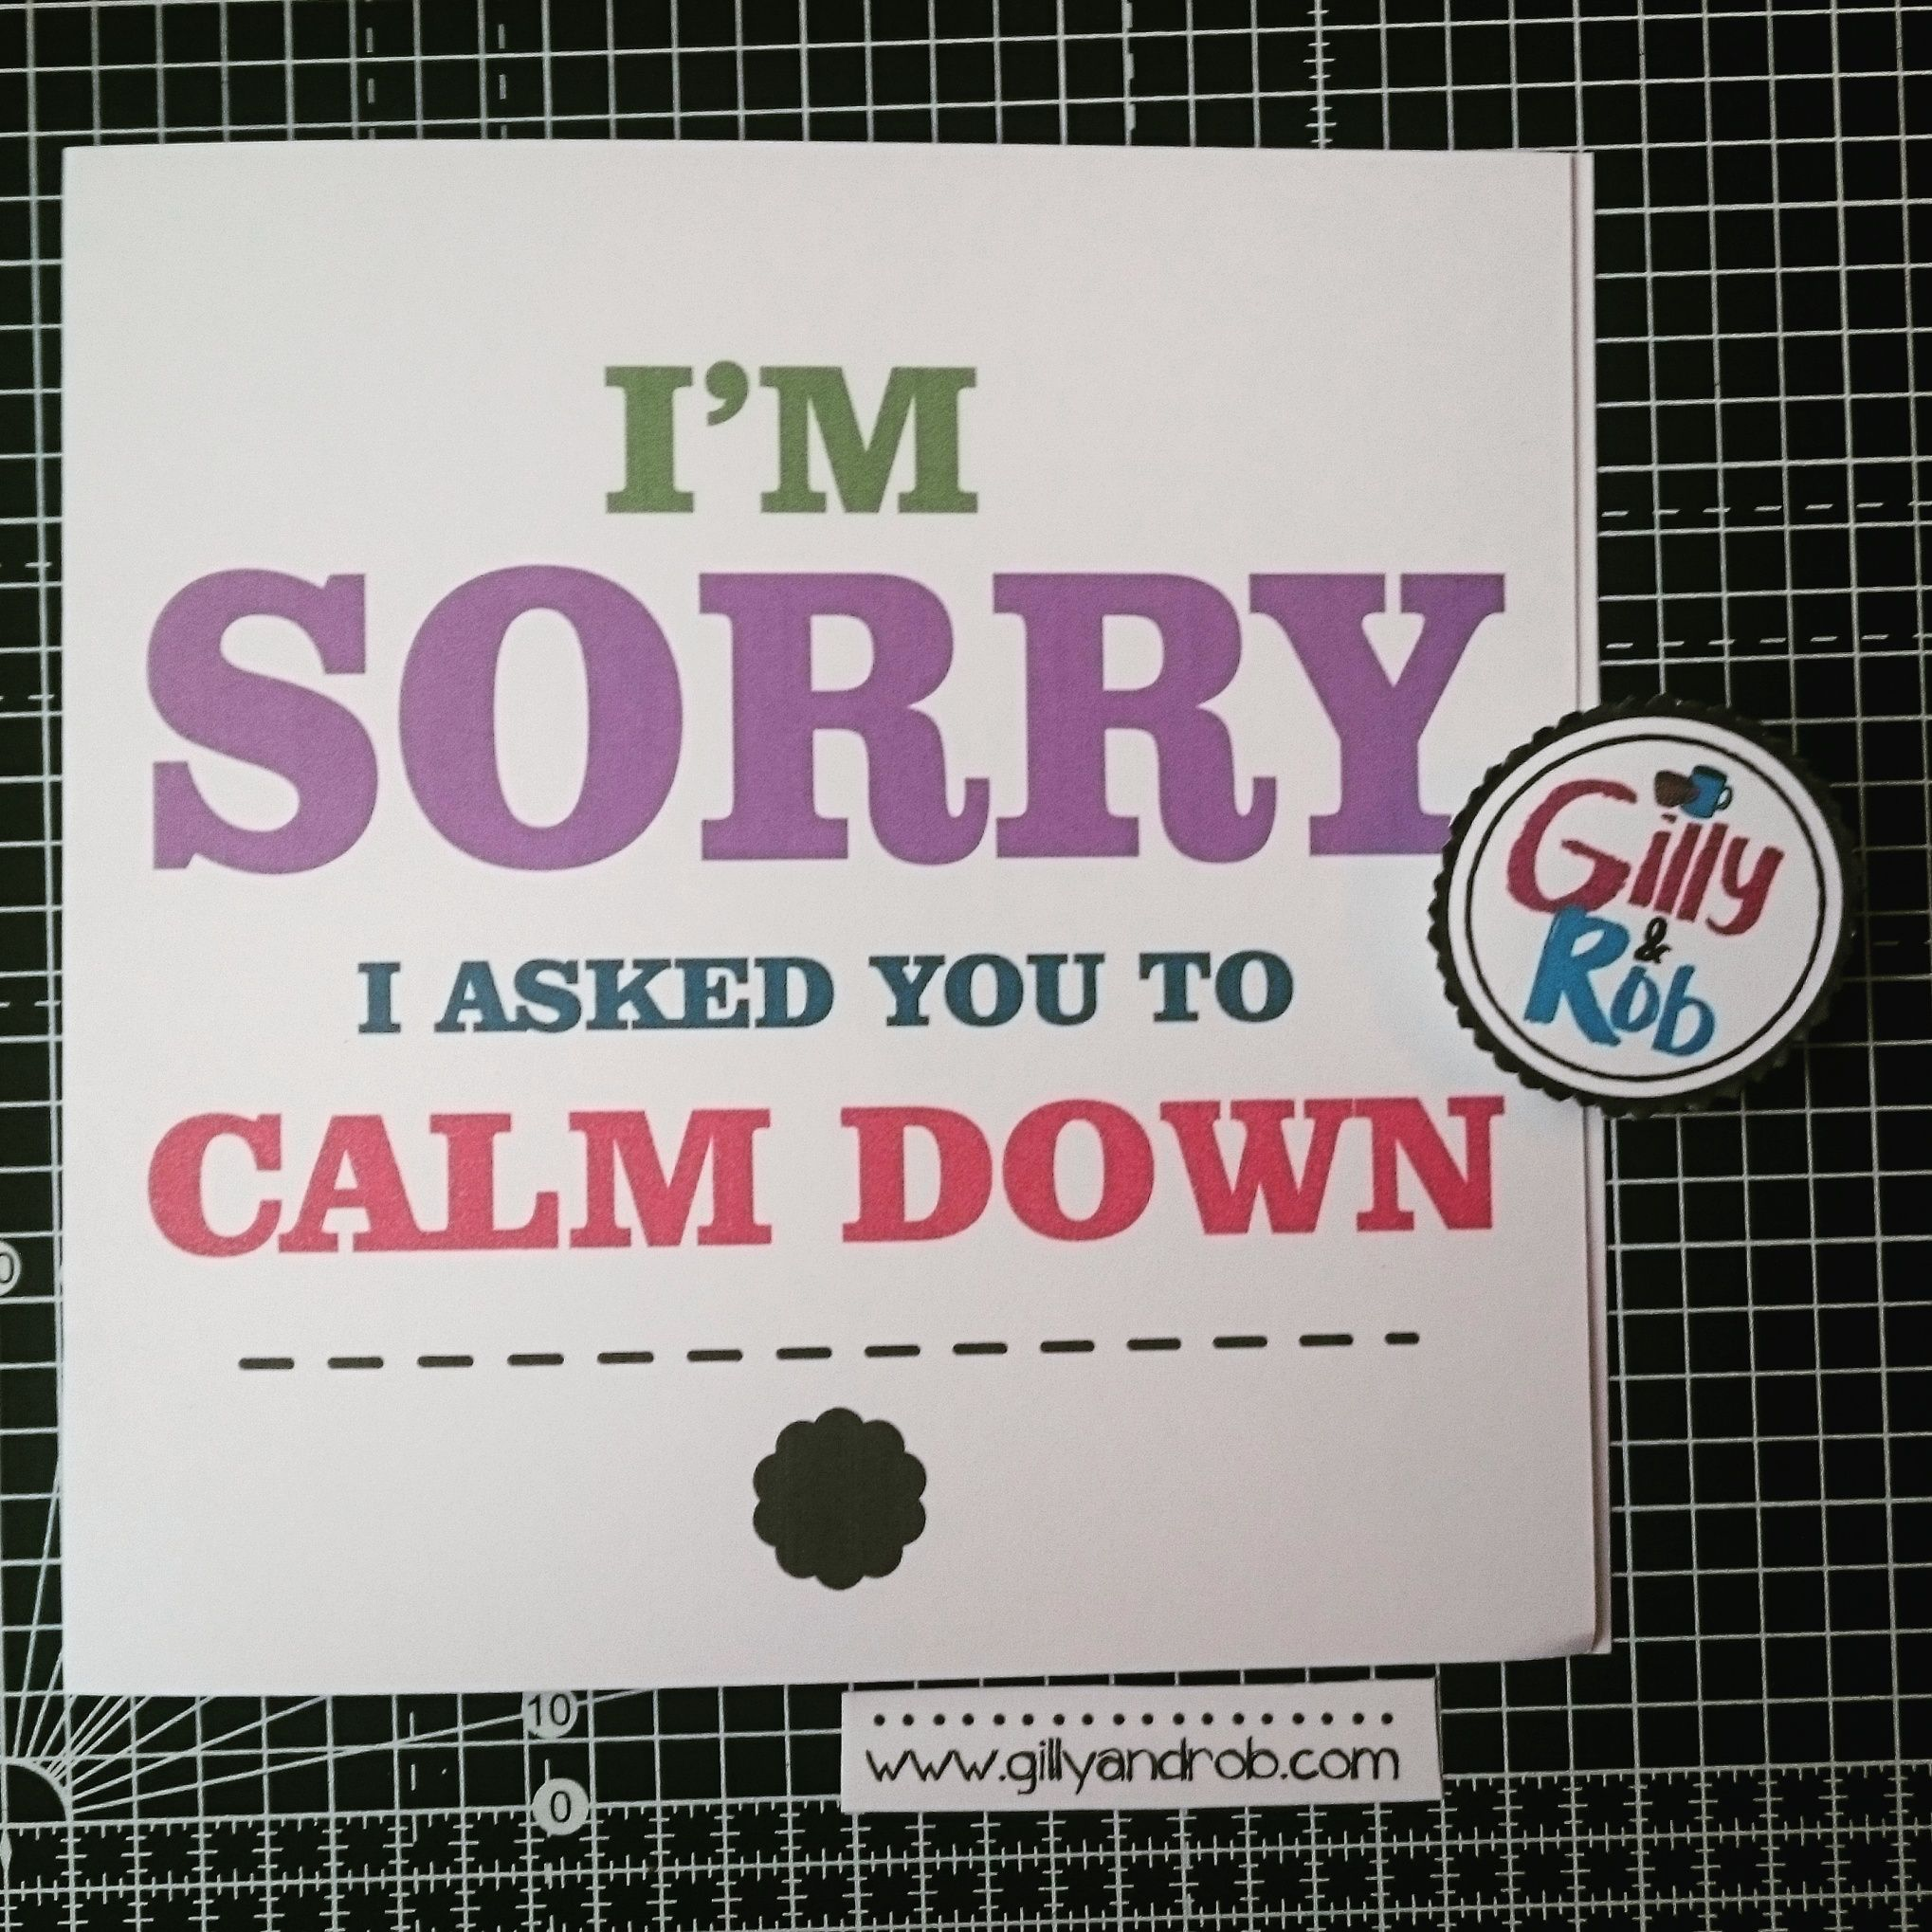 Never ask a woman to calm down!